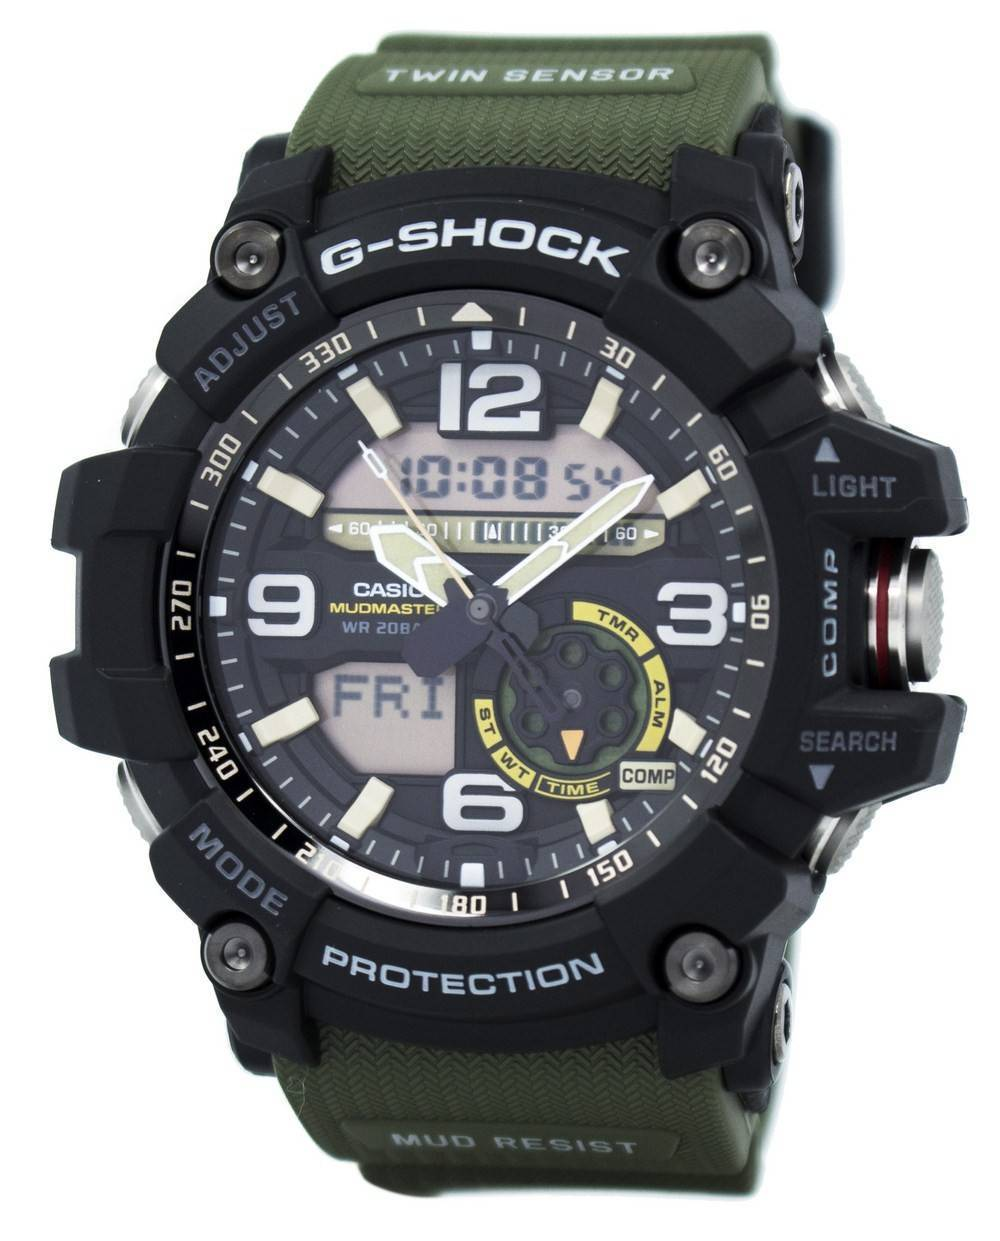 Casio-G-Shock-Mudmaster-Analog-Digital-Twin-Sensor-GG-1000-1A3-Mens-Watch